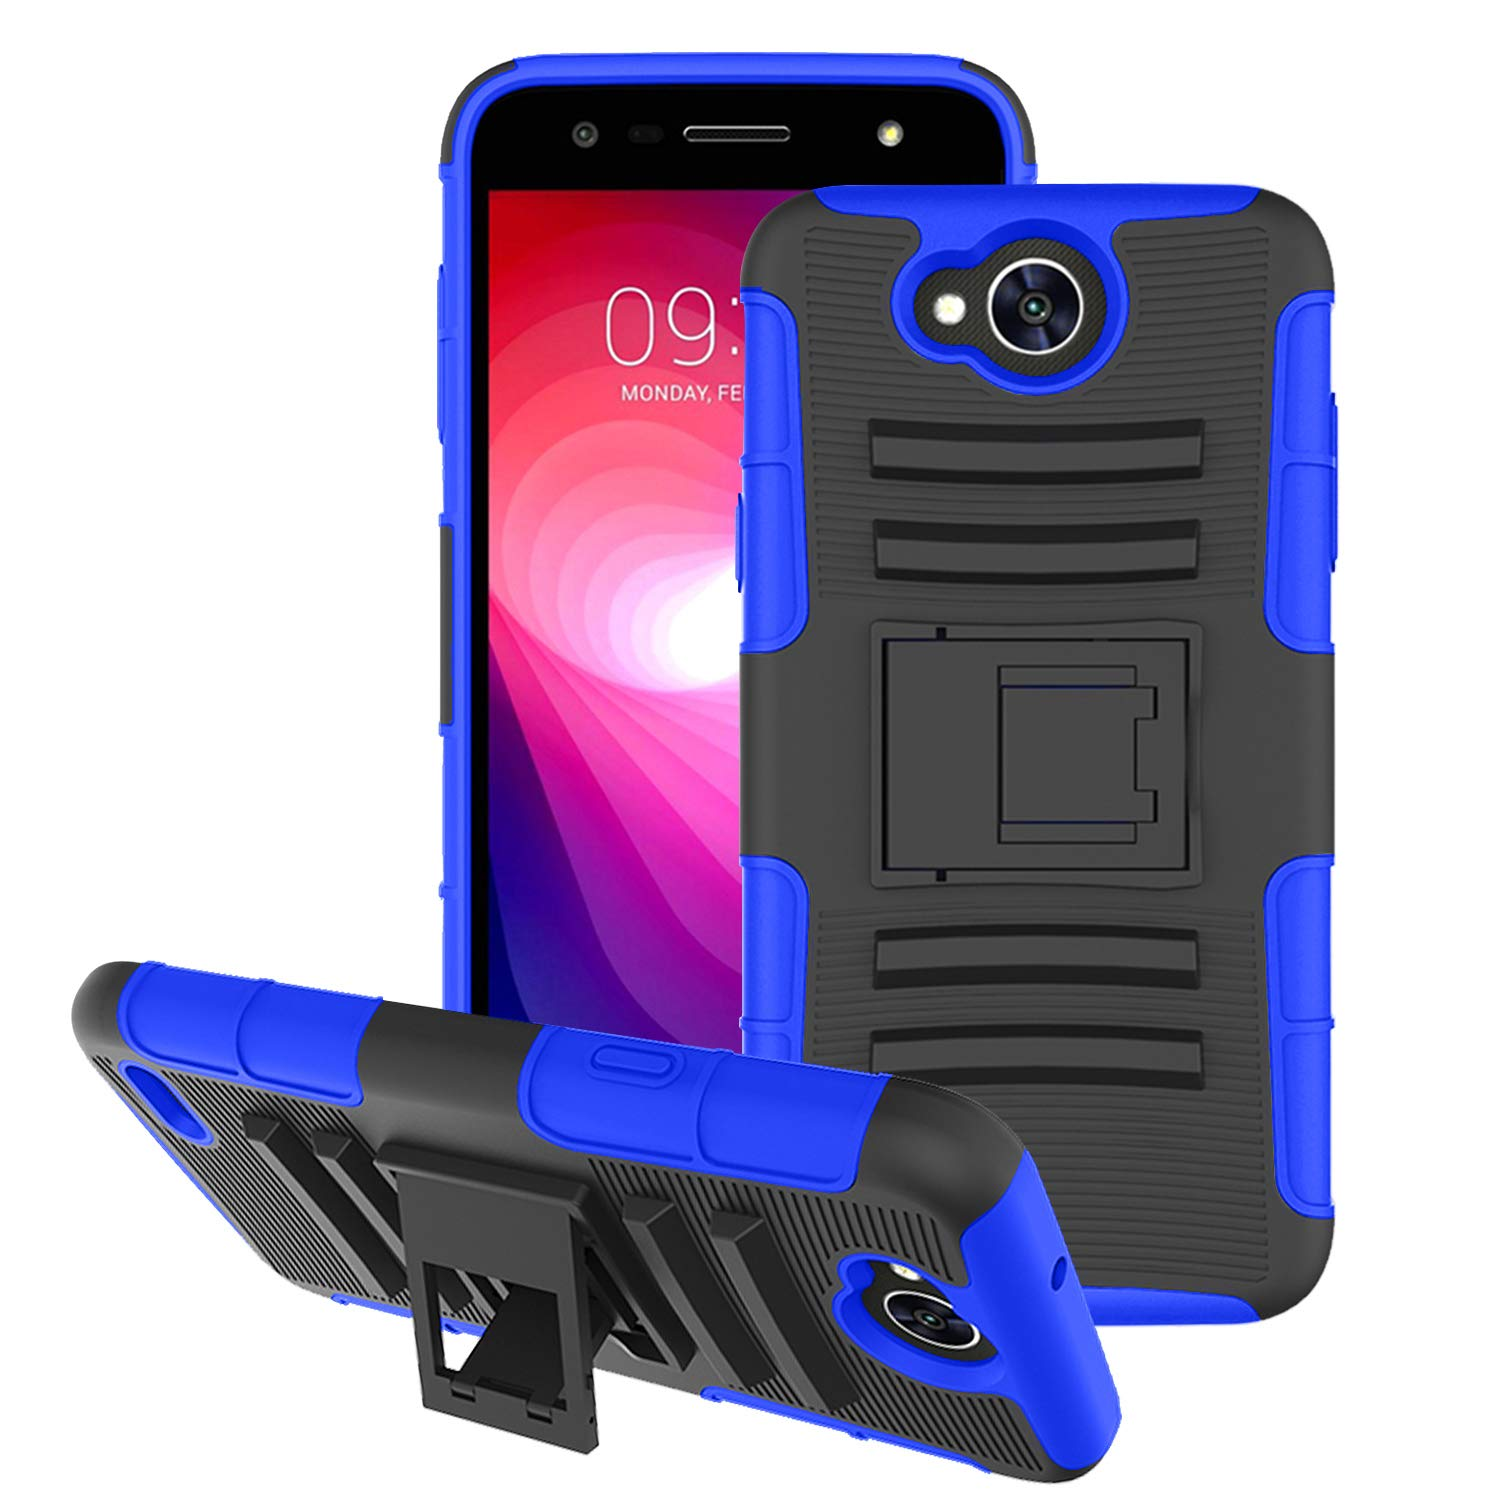 Aetech Phone Case for LG X Charge/XCharge/LG X Power 2/Xpower 2/LG Fiesta 2/LG Fiesta/LG LV7 2017 Cell Phone Case, with Kickstand Stand Cover, Blue